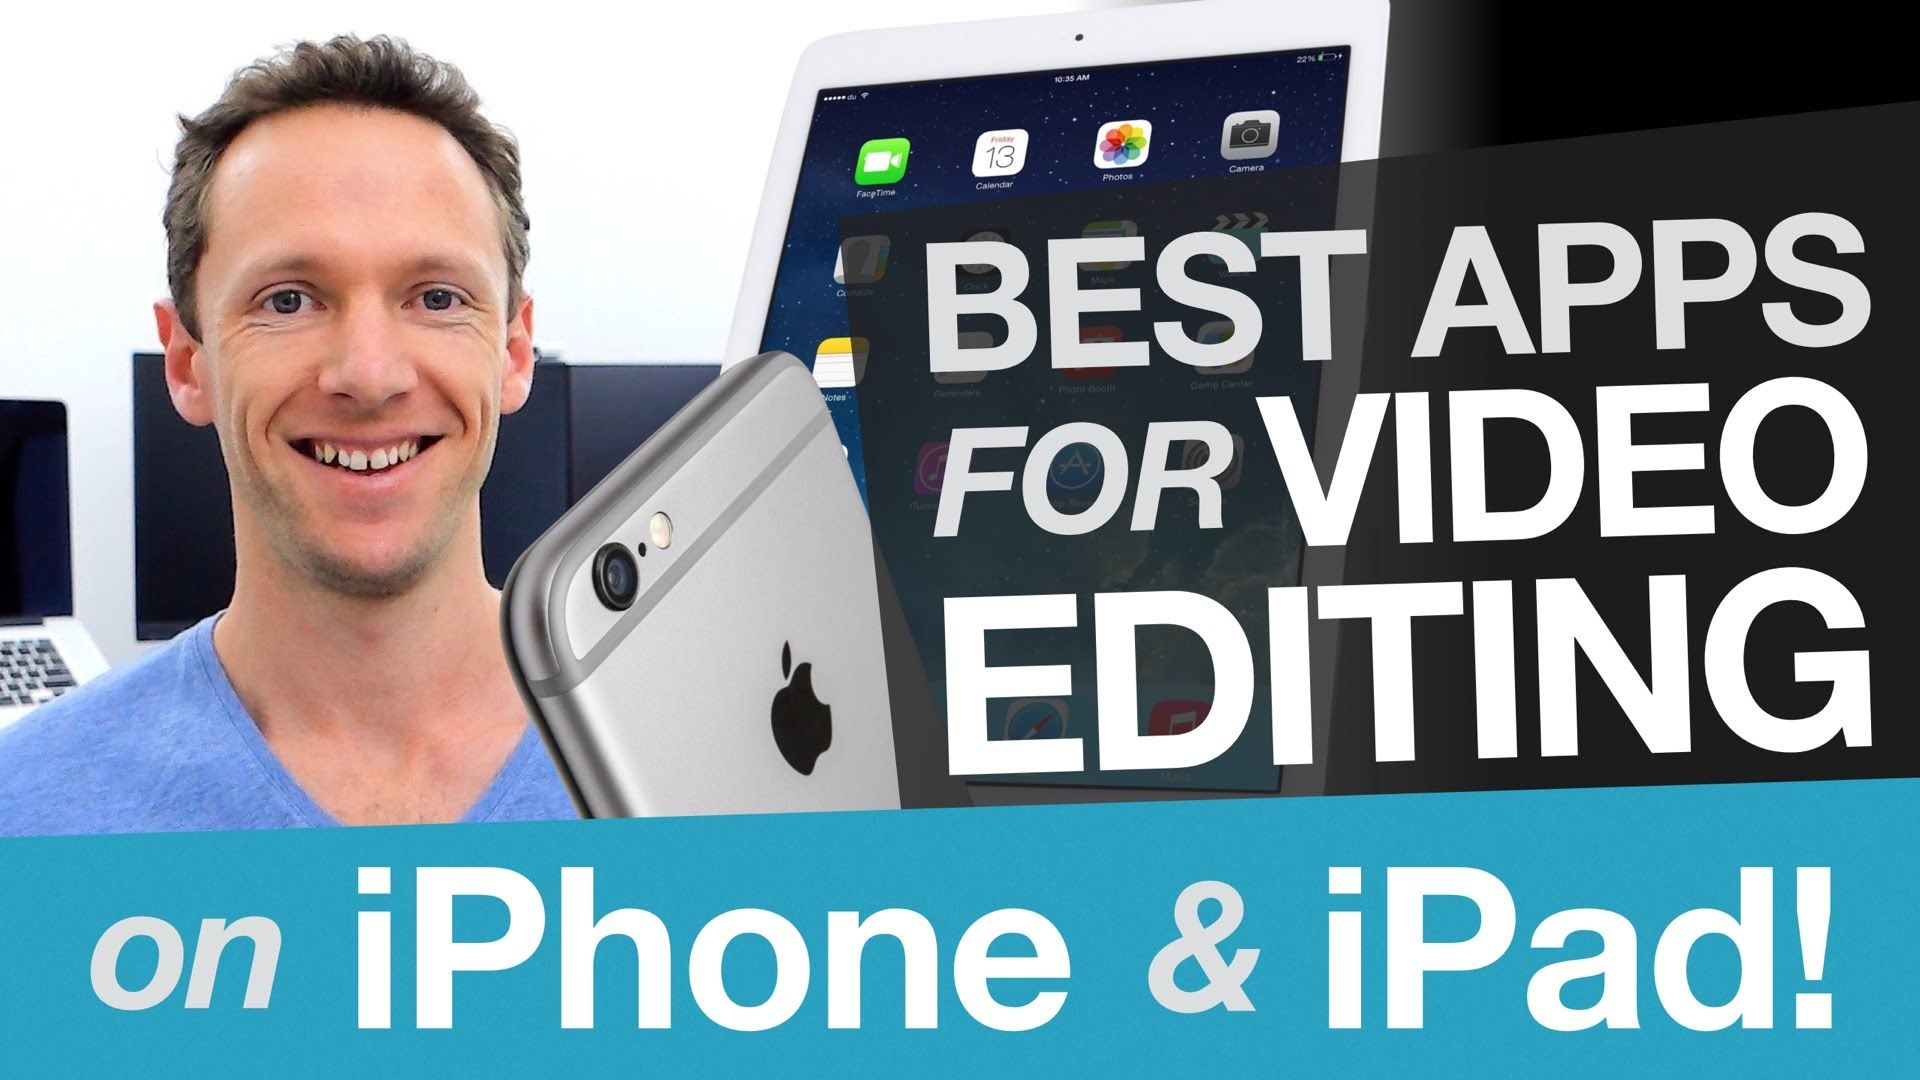 Editing Video on iPhone & iPad Best Video Editing Apps